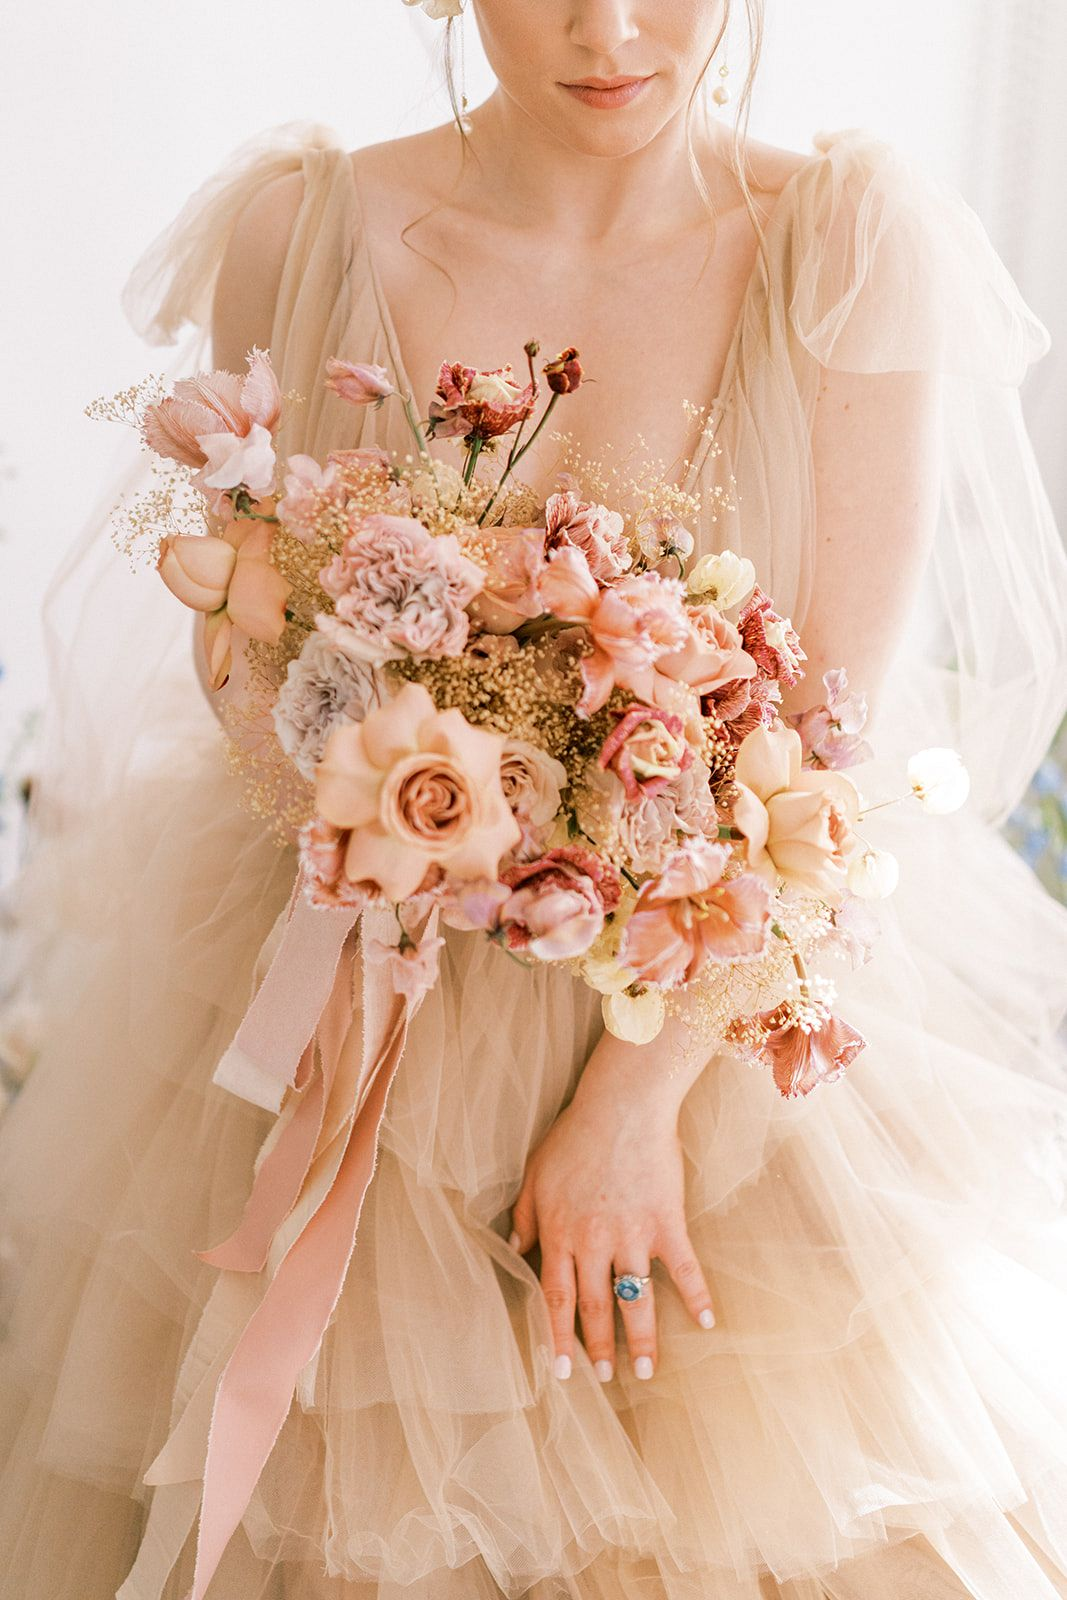 What to Consider if you Want a Wedding Morning Bridal Session